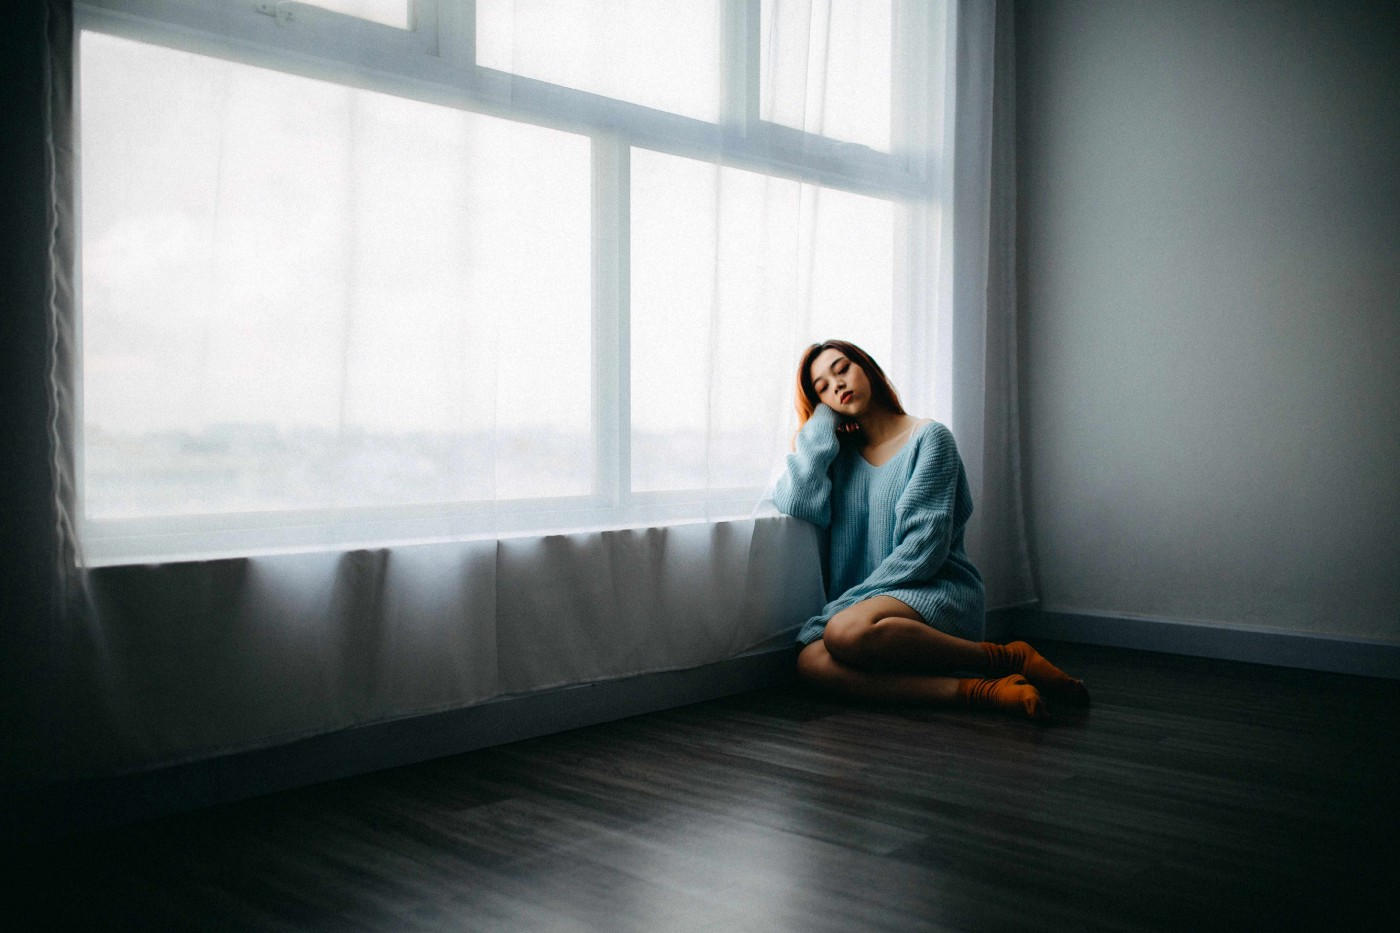 Woman sitting on the floor by a window, looking glum.